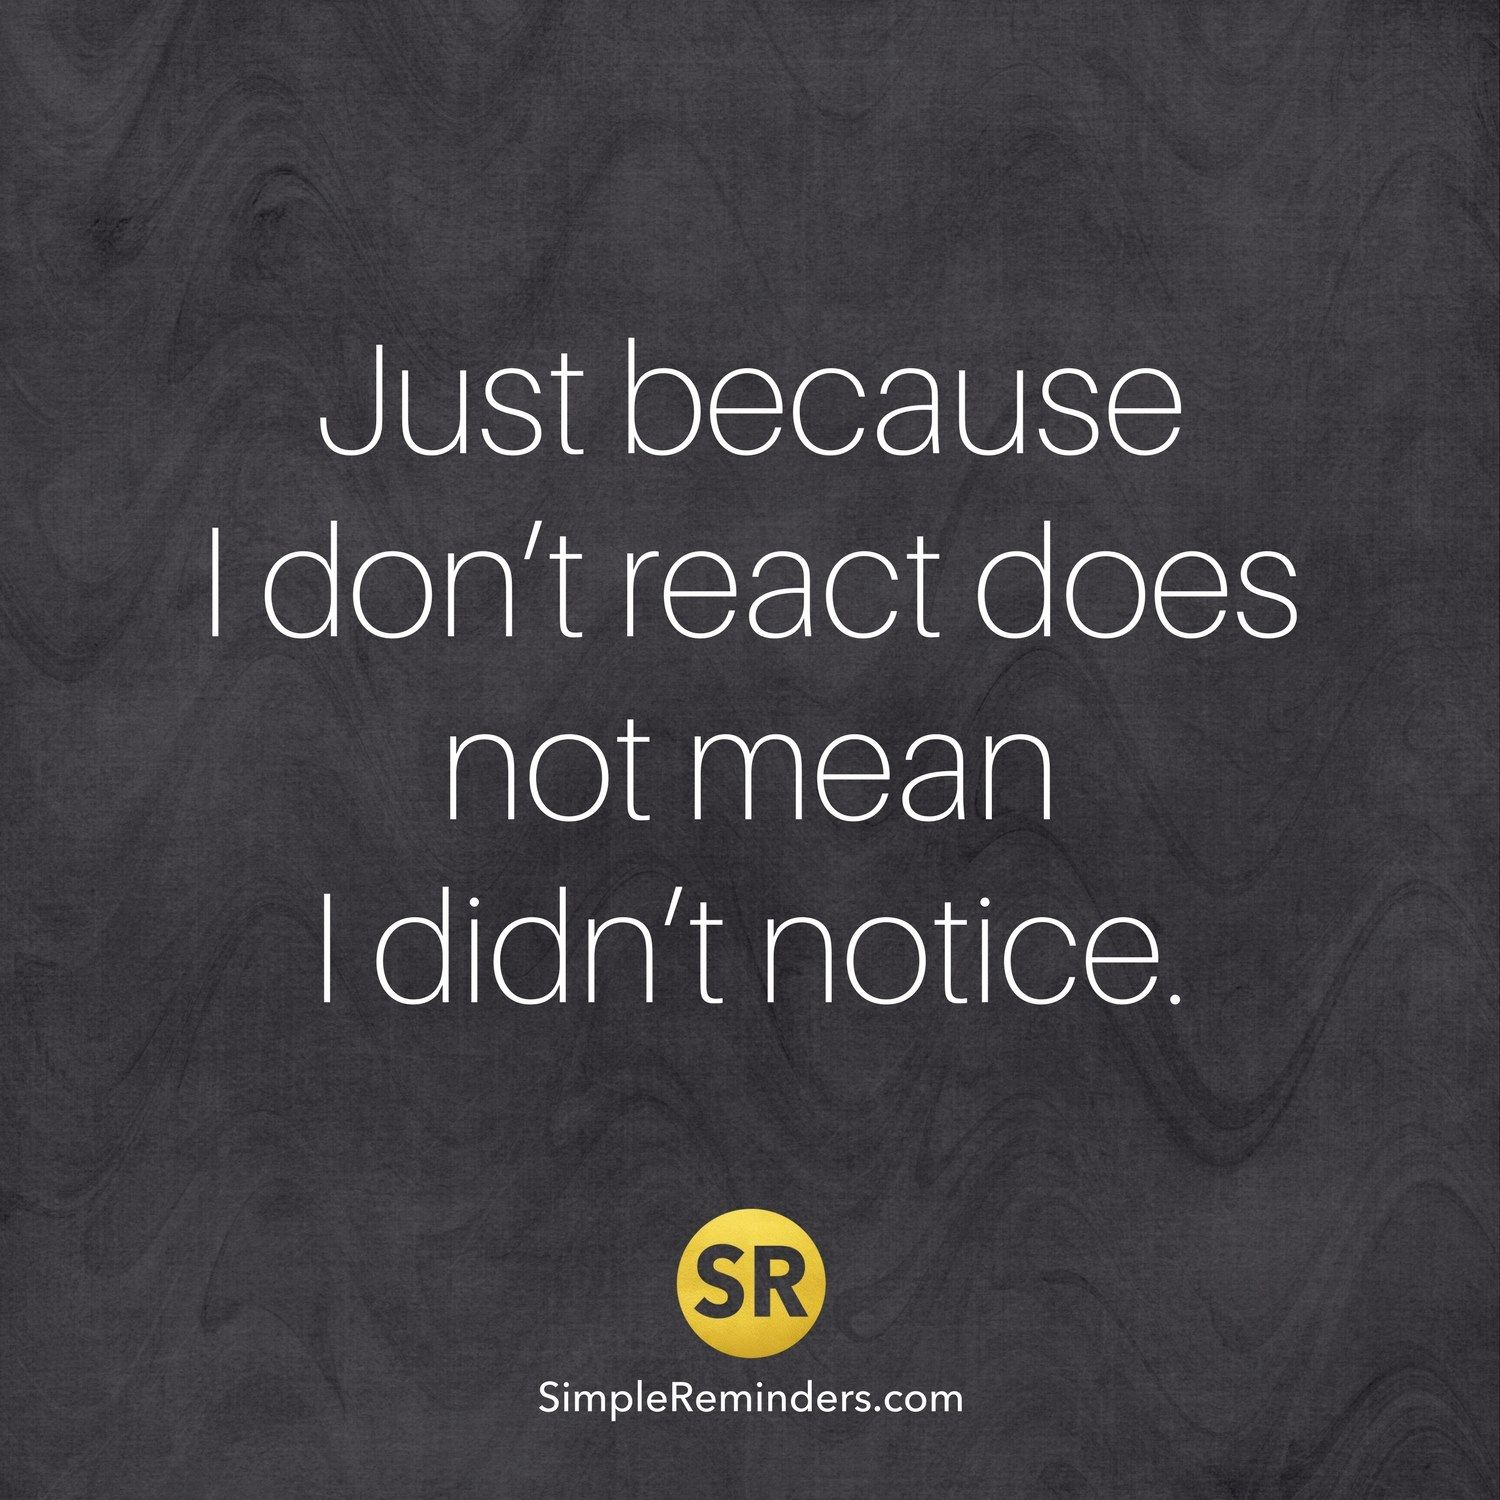 Just because I don't react doesn't mean I didn't notice ...